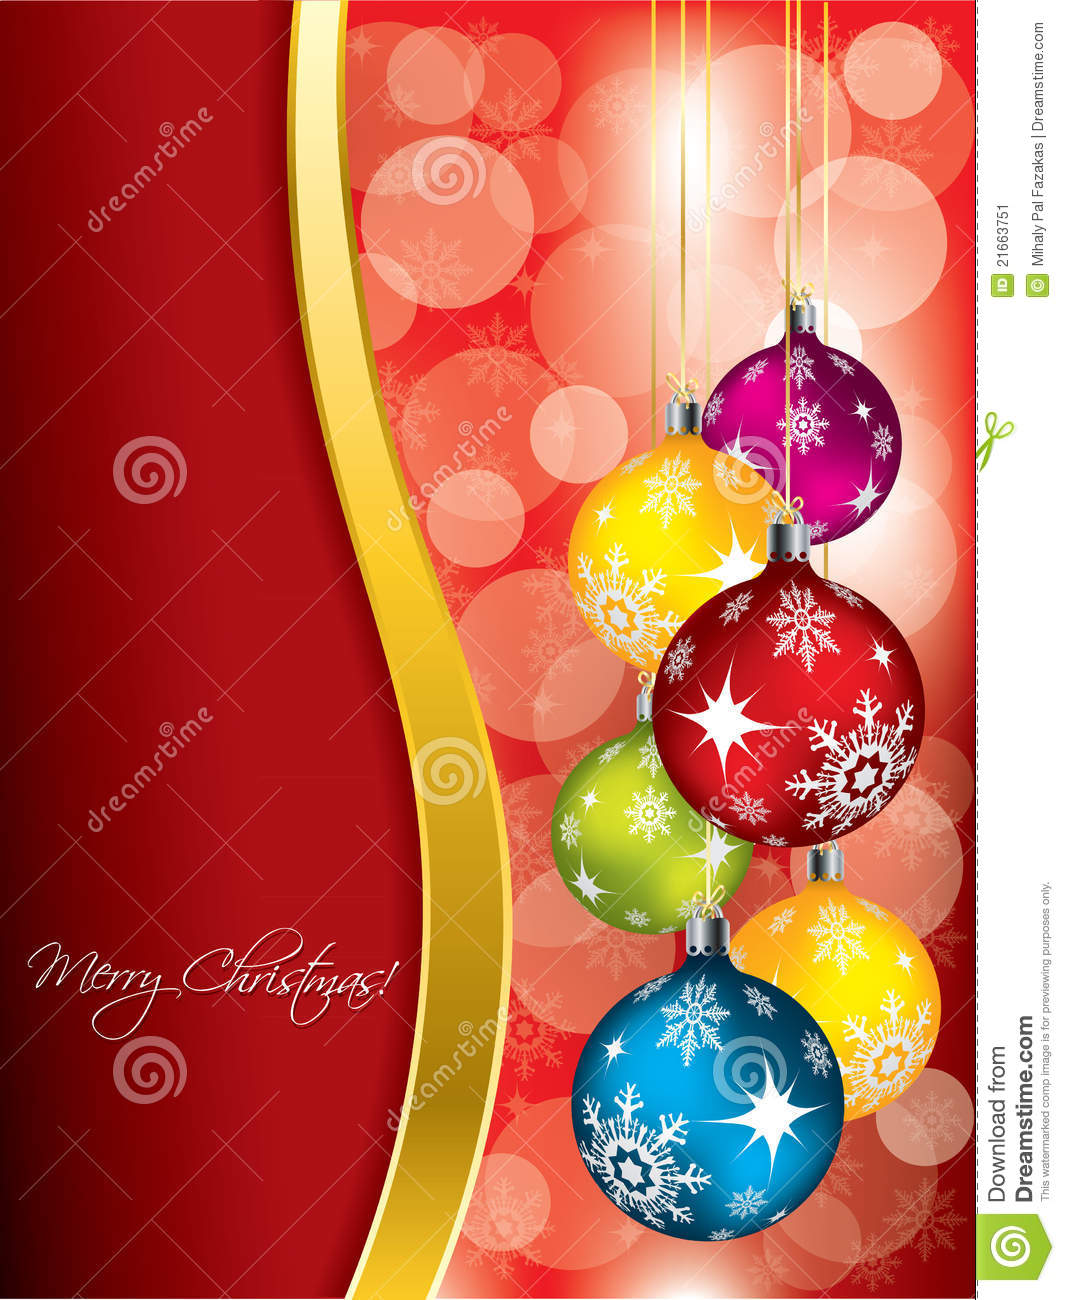 Red christmas greeting card design with gold wave stock vector red christmas greeting card design with gold wave m4hsunfo